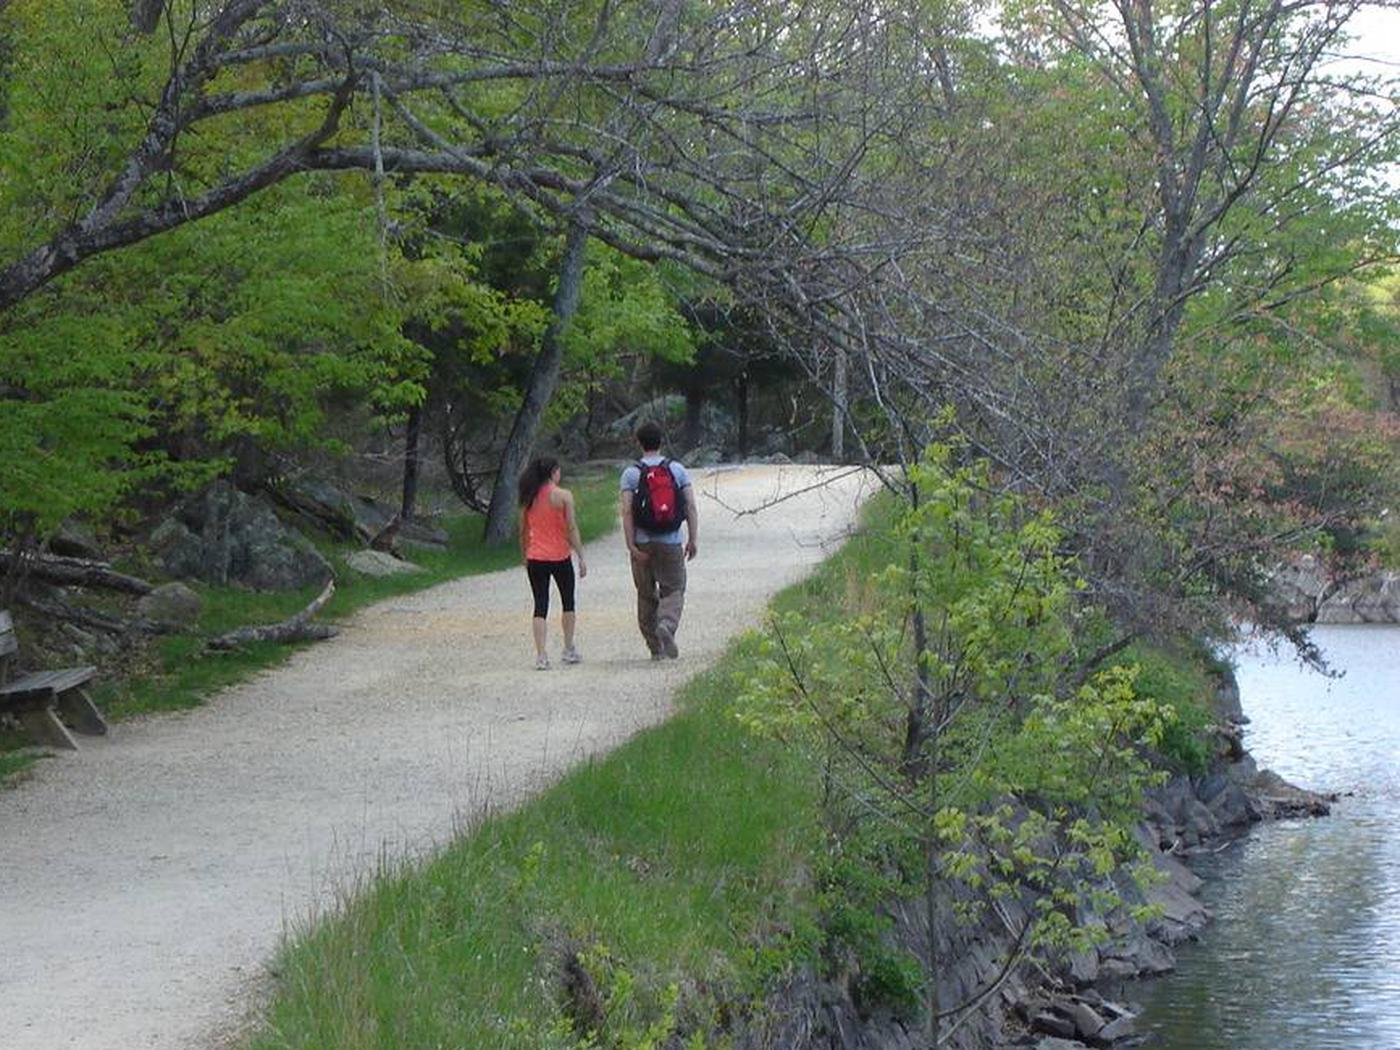 Couple Walks on the Towpath, Chesapeake and Ohio Canal